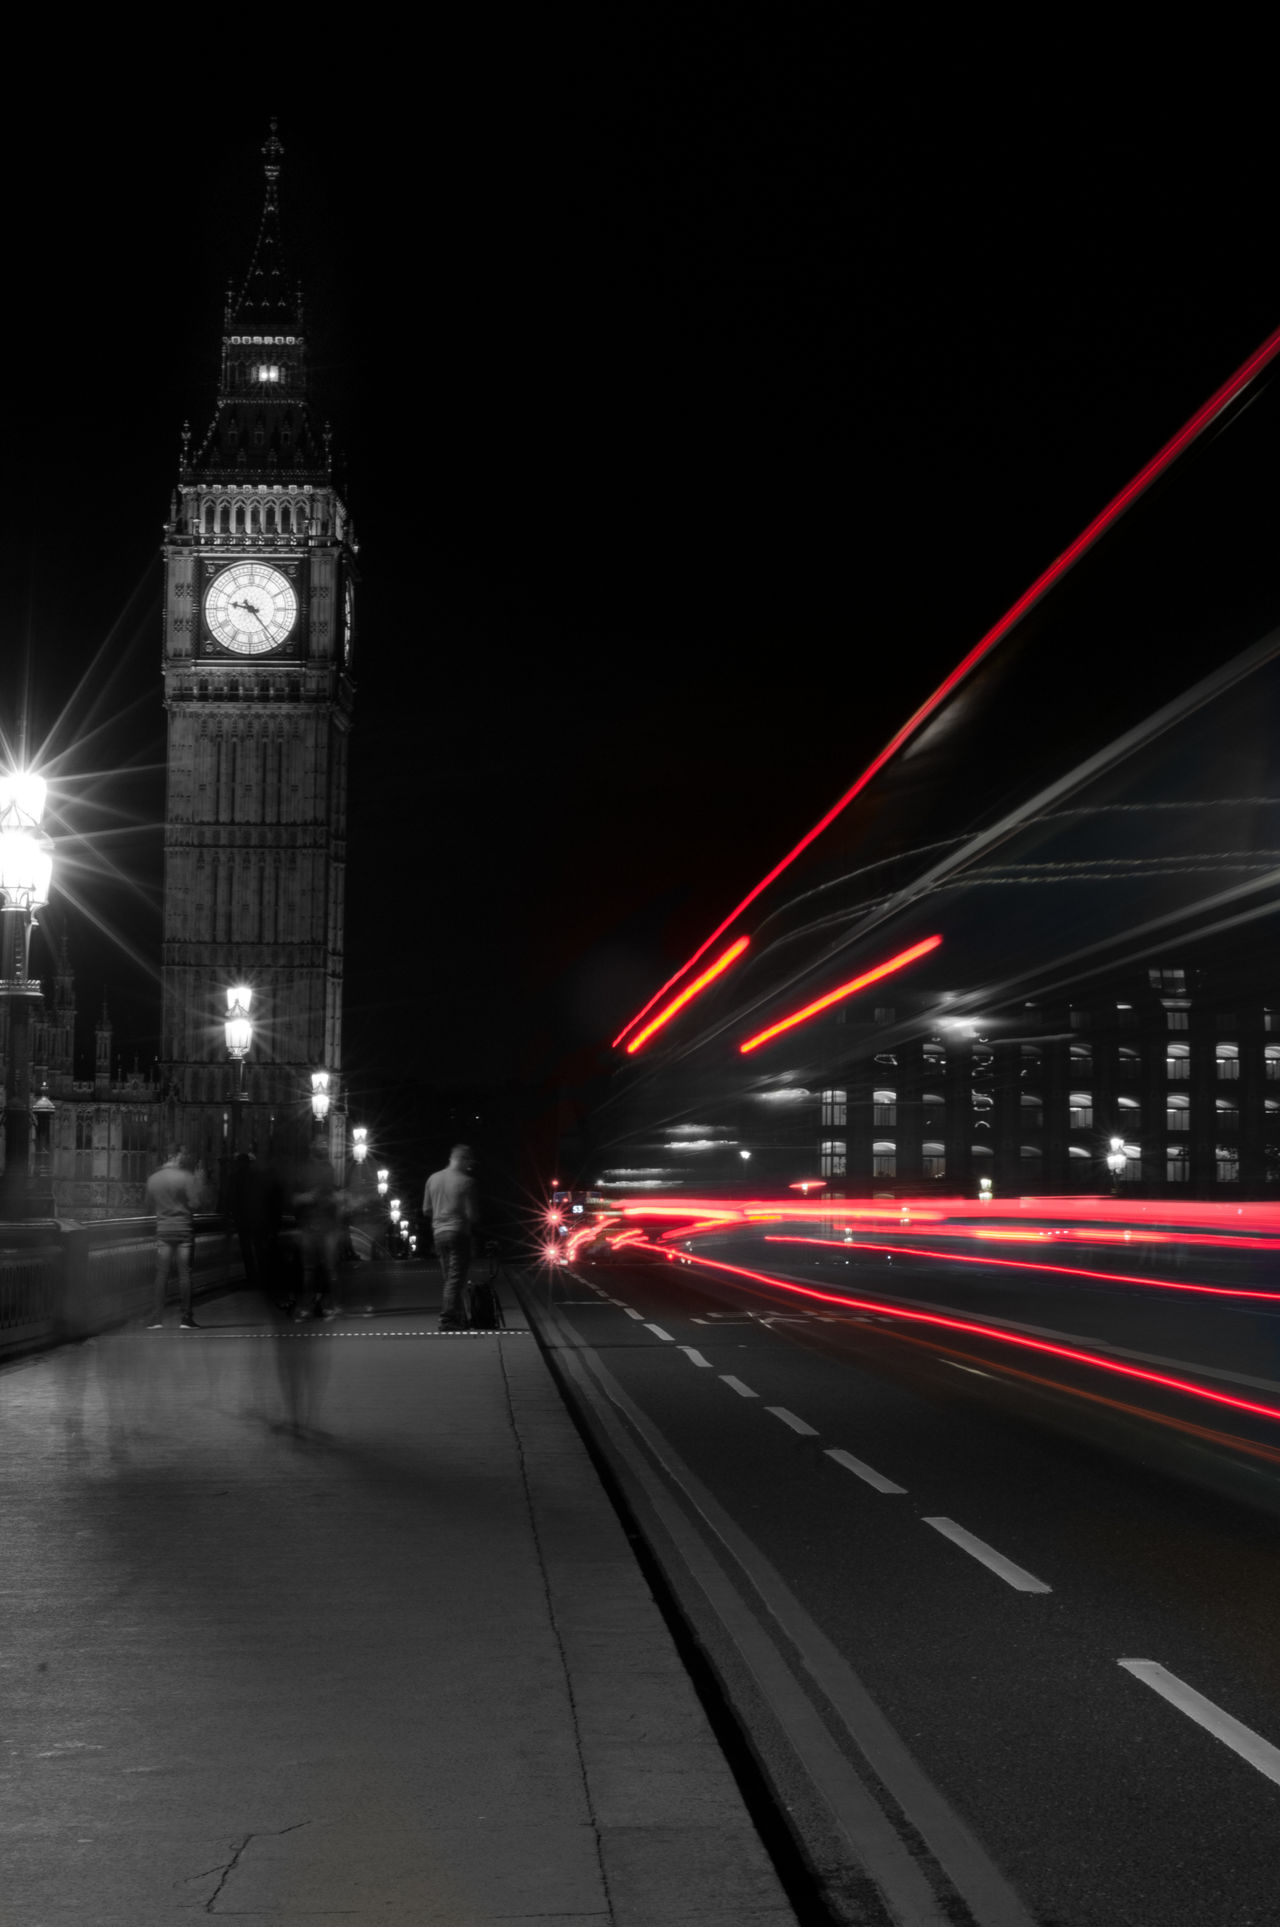 Architecture Big Ben Bridge - Man Made Structure City Clock Clock Face Clock Tower Cultures Illuminated Light Trail Lightpainting Midnight Motion Night No People Outdoors Sky Time Transportation Travel Destinations Westminster Bridge